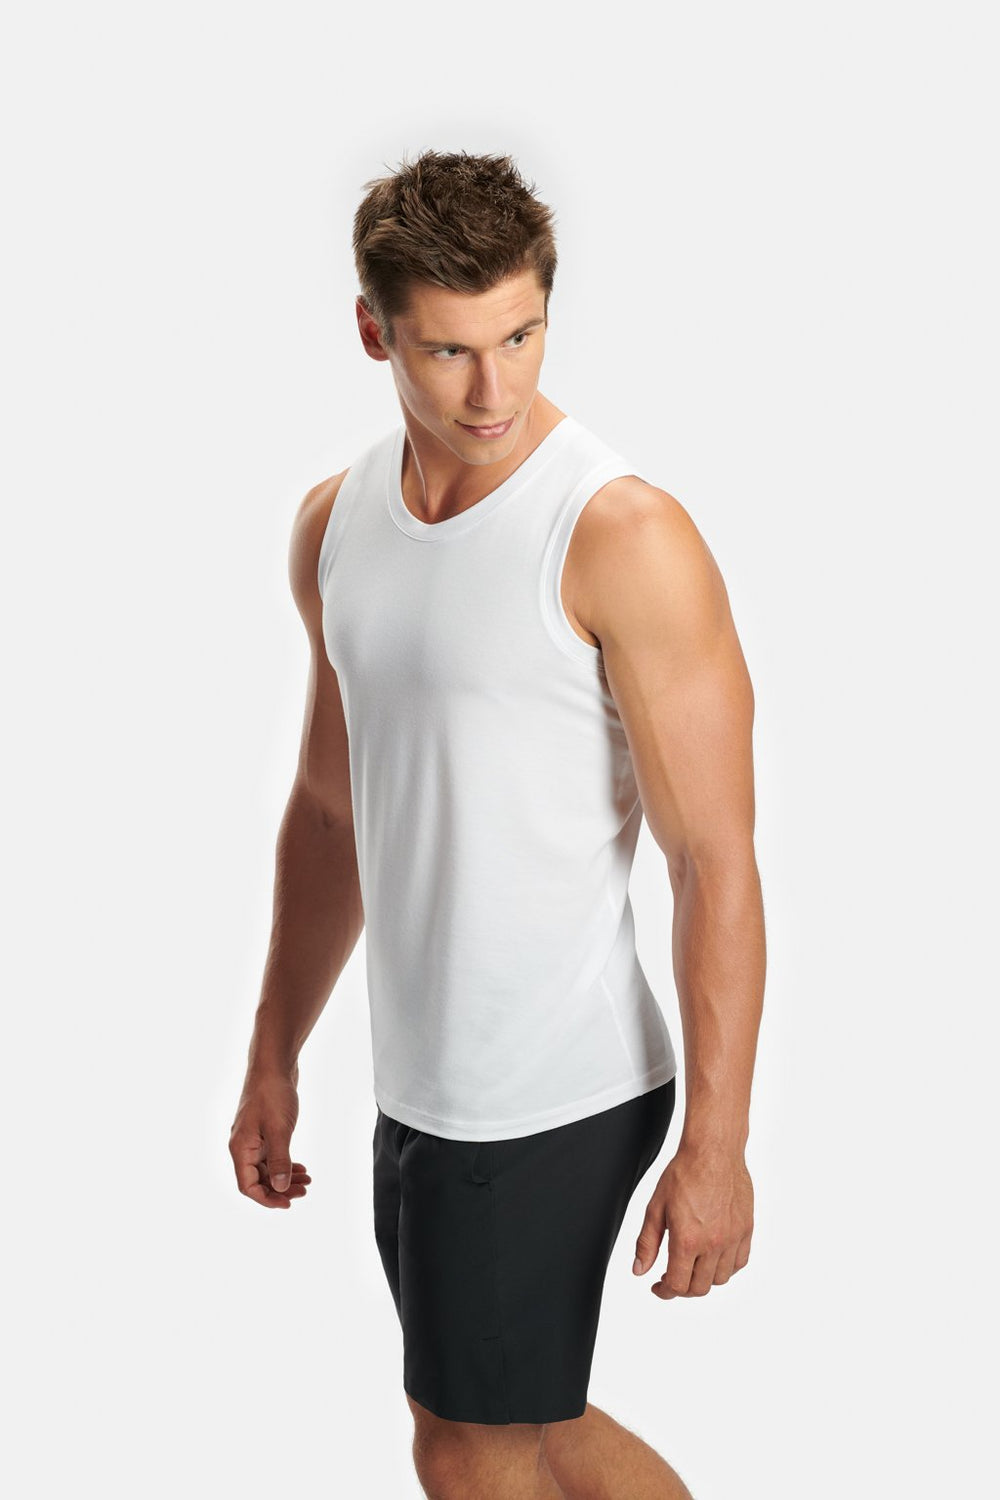 RYU Mens Standard Issue Tank - RYU Graphic in White